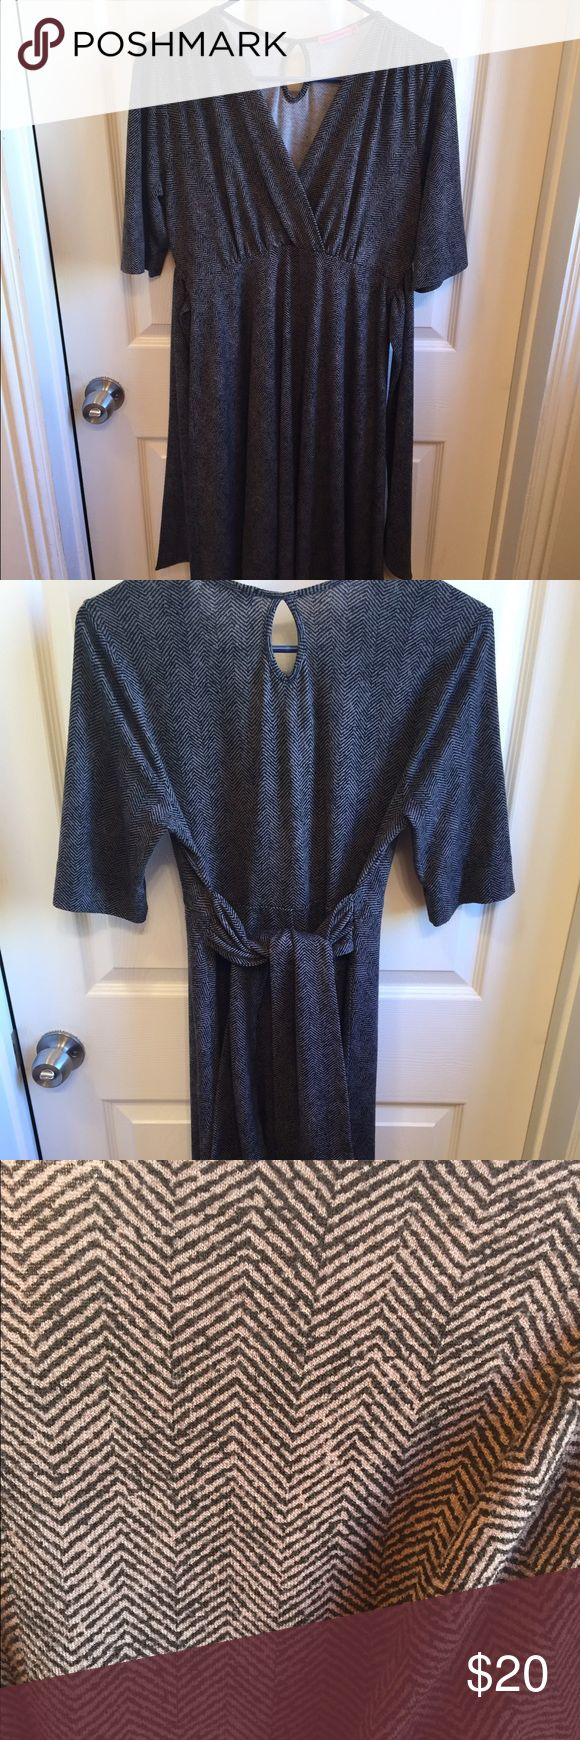 Maternal America jersey maternity dress Maternal America size M (generous - will fit size L, depending on bust size) jersey stretchy dress with tie accent. Super flattering to show off that adorable bump! Easily dresses up for office or nights out, etc. Maternal America Dresses